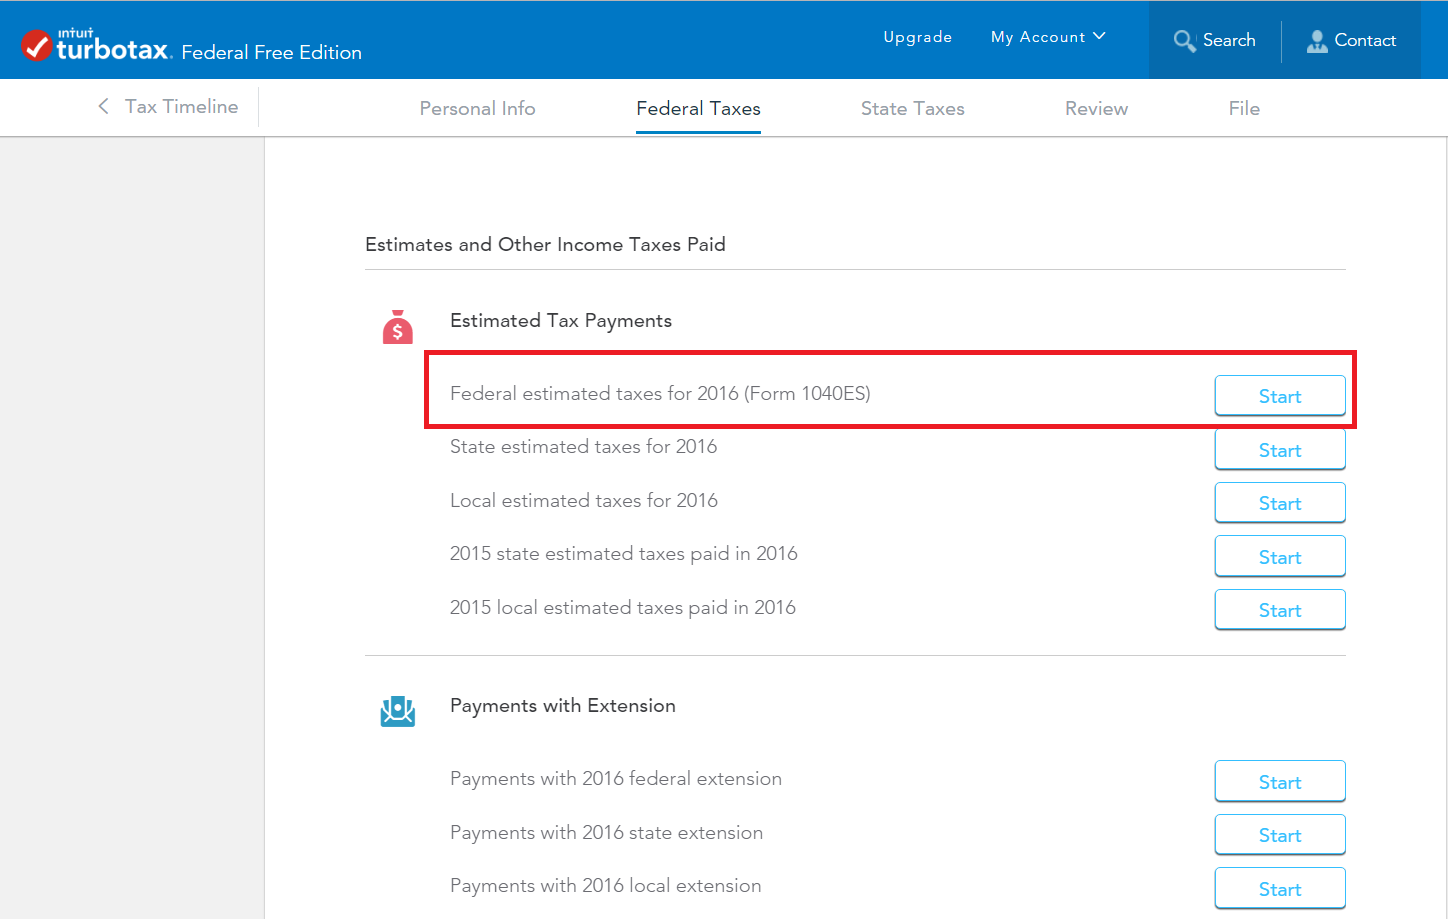 How do I enter Form 1040-ES payments for 2016 - TurboTax Support